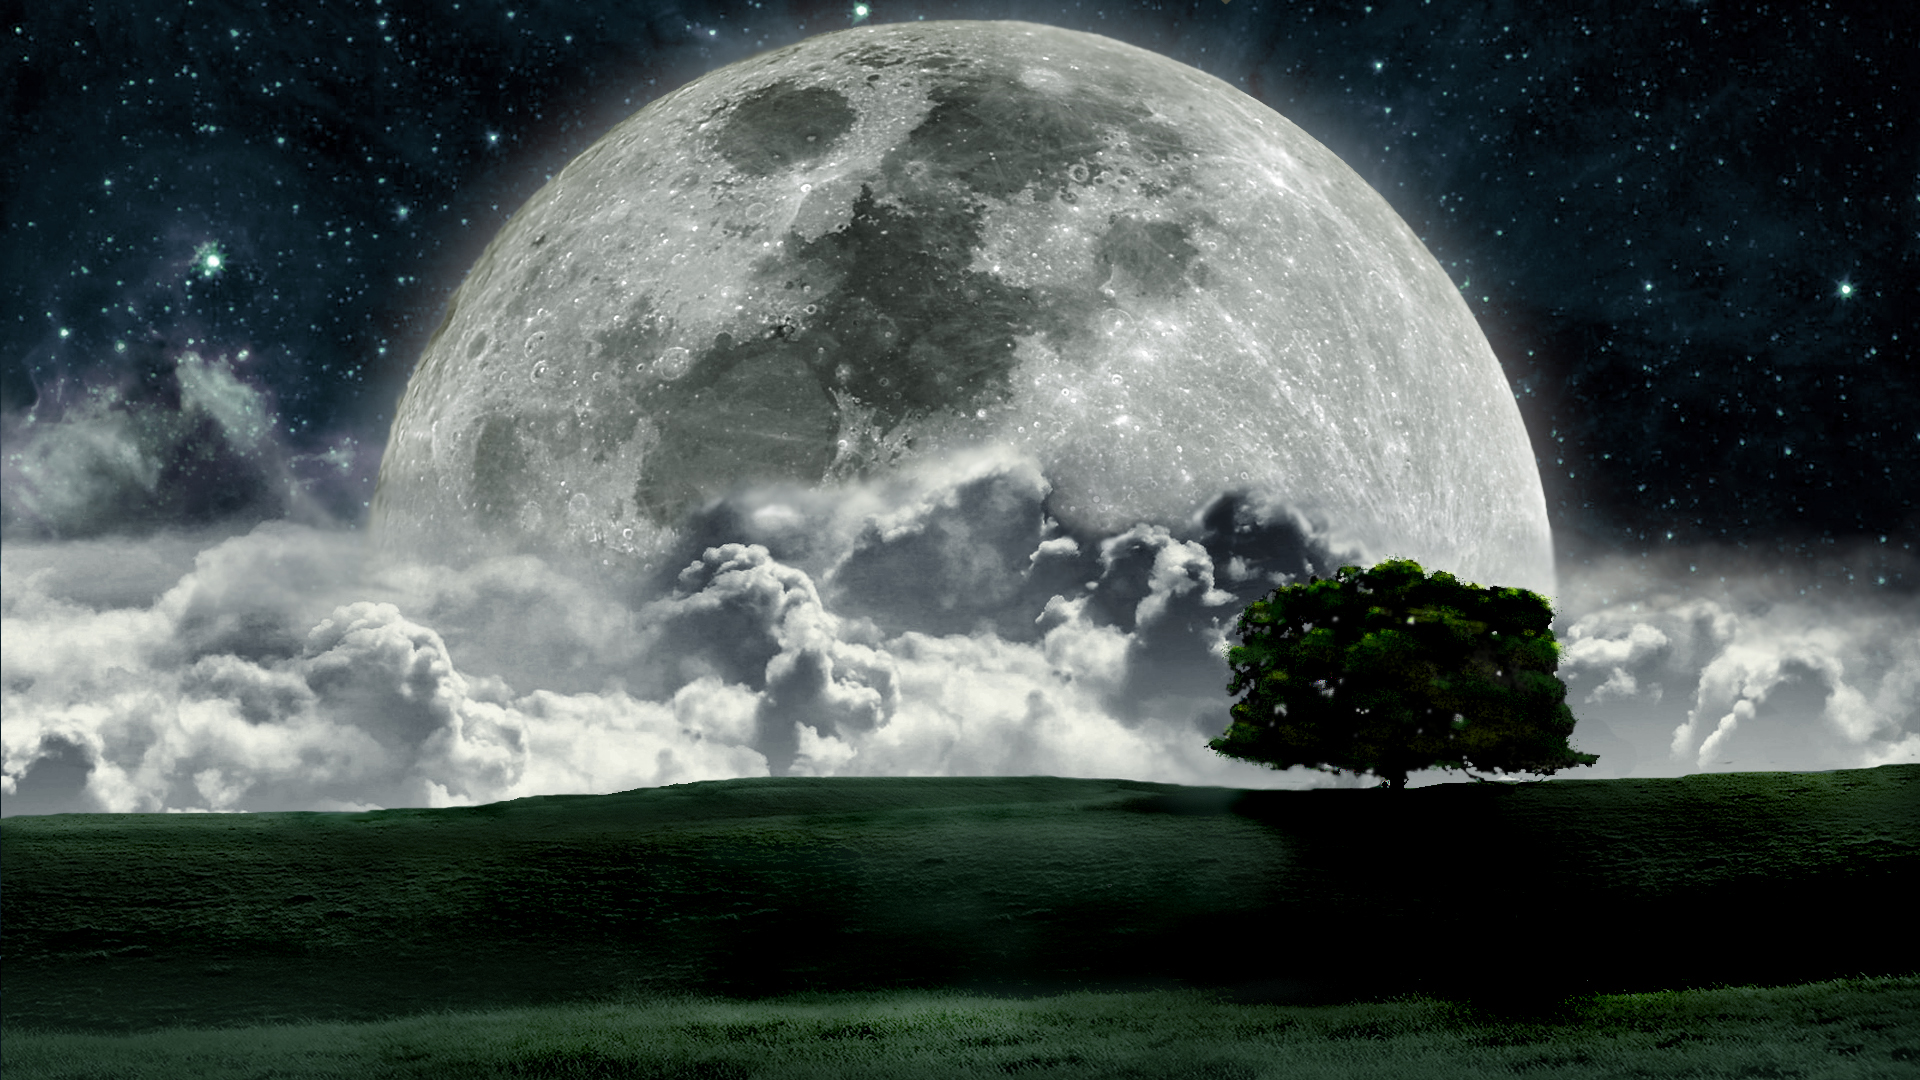 Moon Landscape Wallpaper, Desktop, HD, Free Download